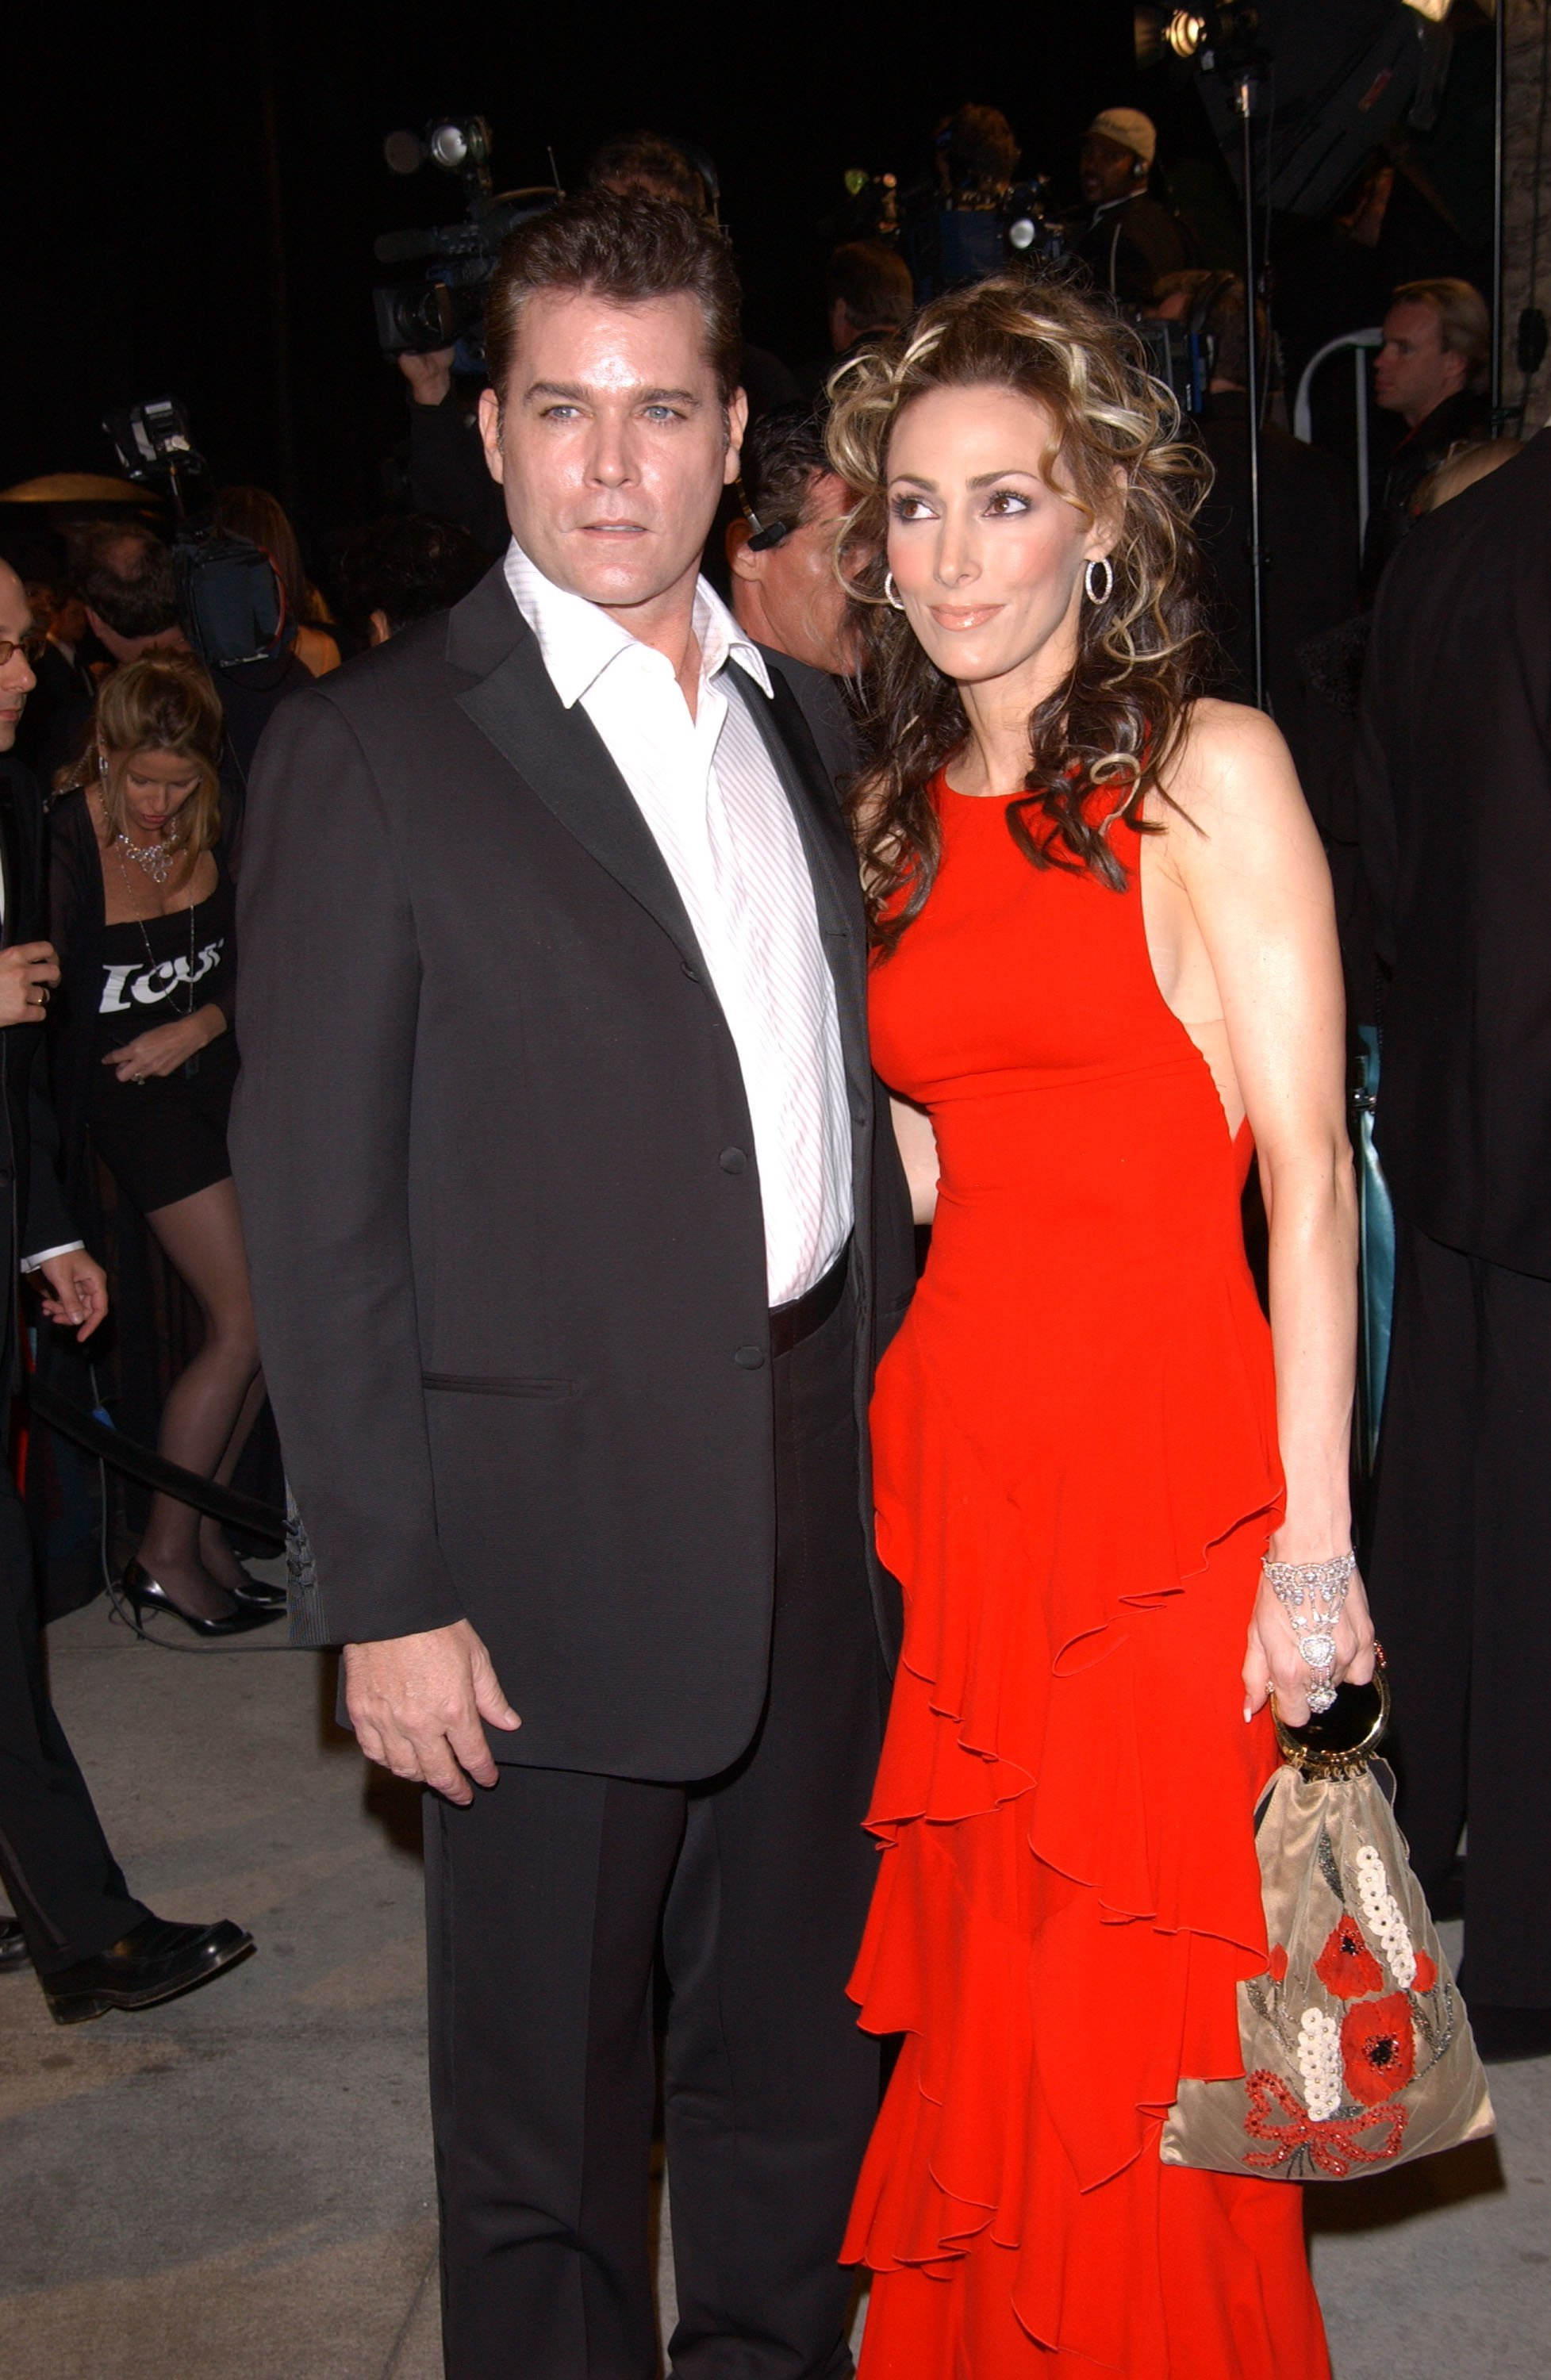 Ray Liotta and his wife Michelle Grace attend the Vanity Fair Oscar Party at Mortons March 24, 2002, in West Hollywood, CA. | Source: Getty Images.